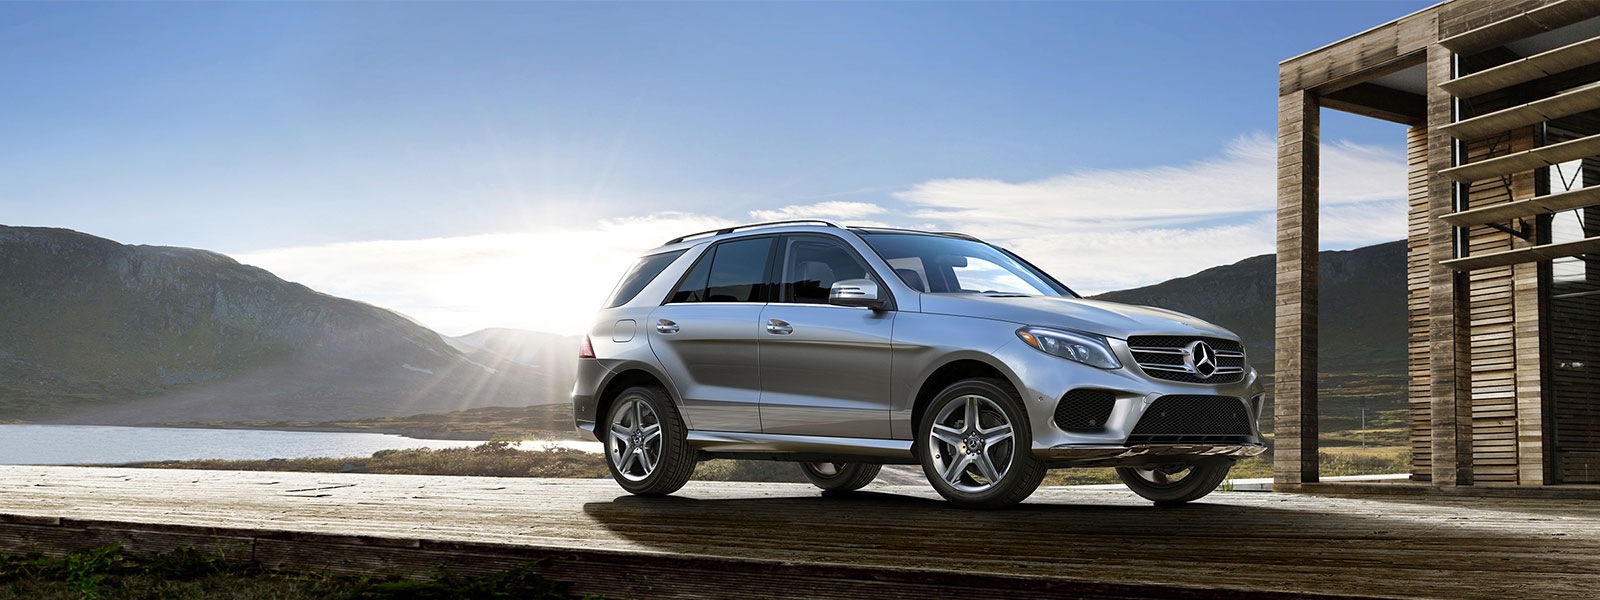 benz suv m wallpaper mercedes concept cars side hd images coupe